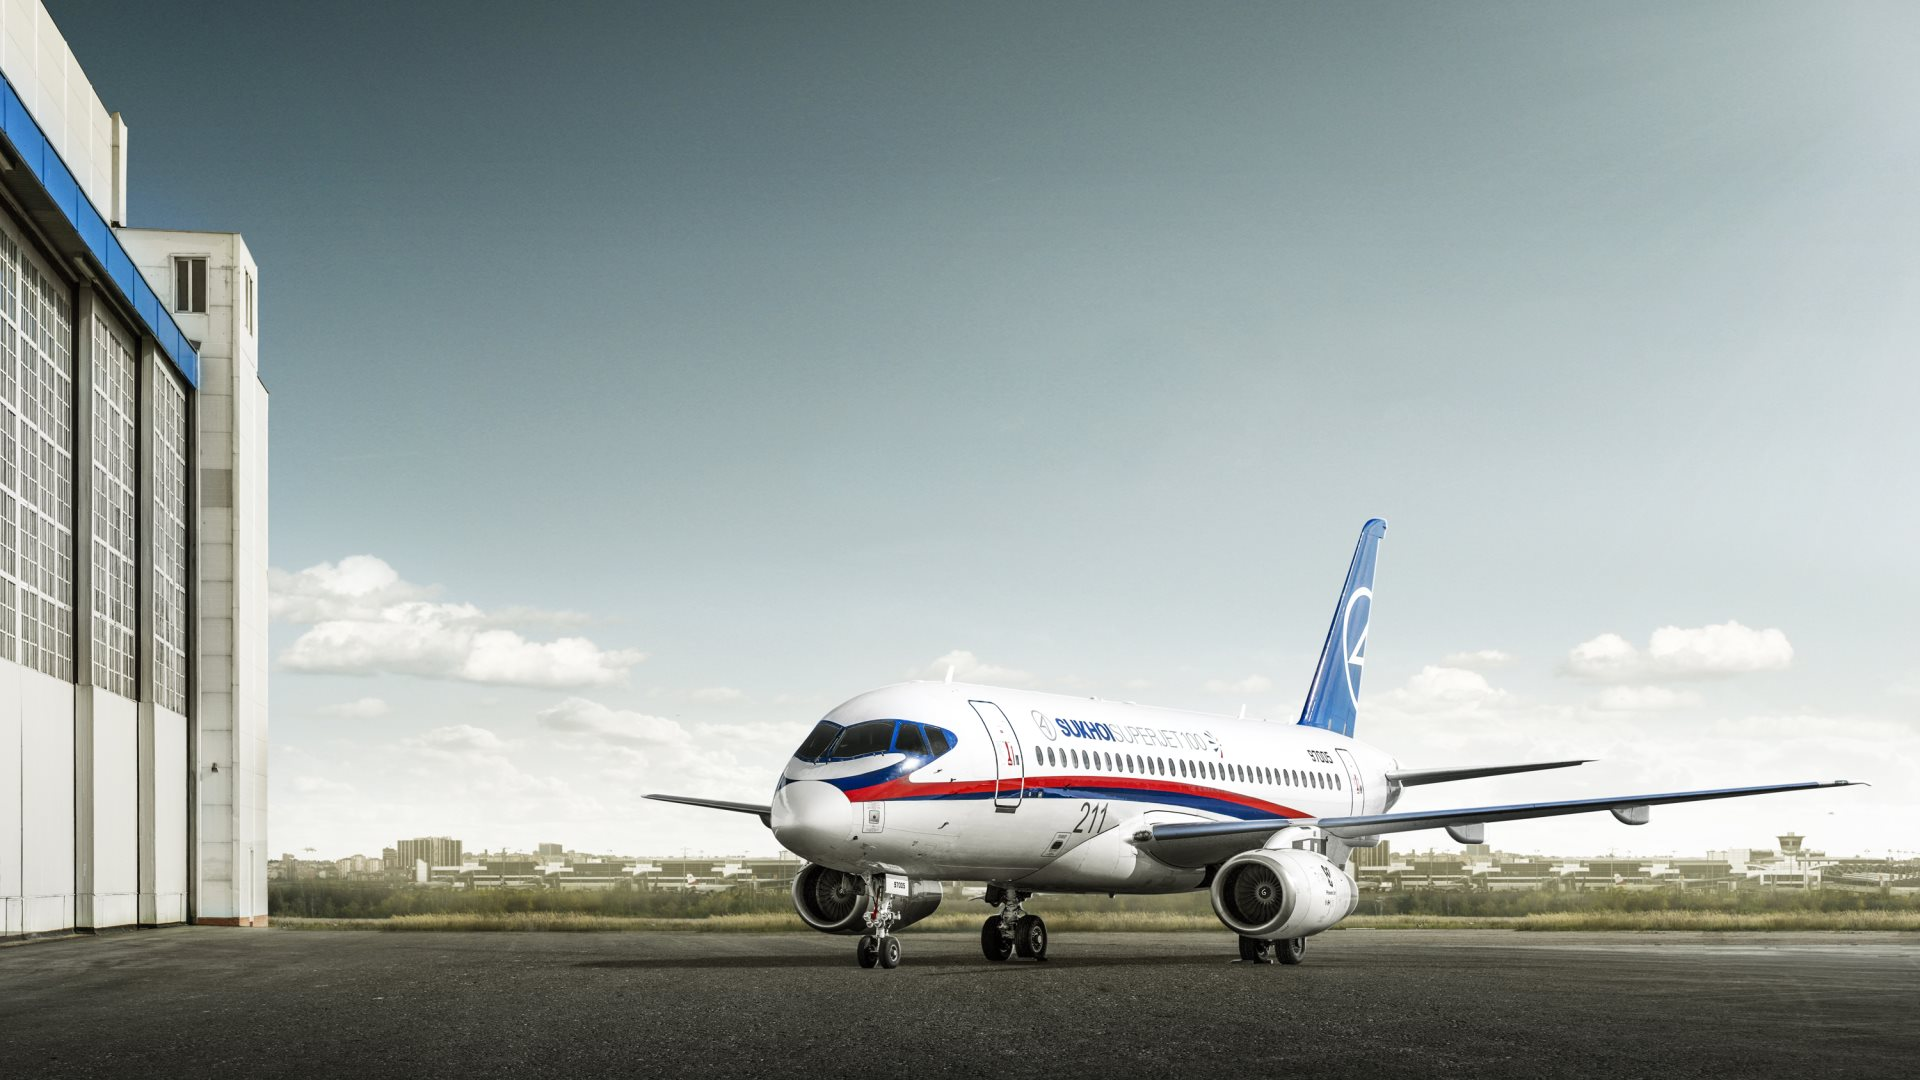 Sukhoi Superjet-100 - wallpaper1920x1080